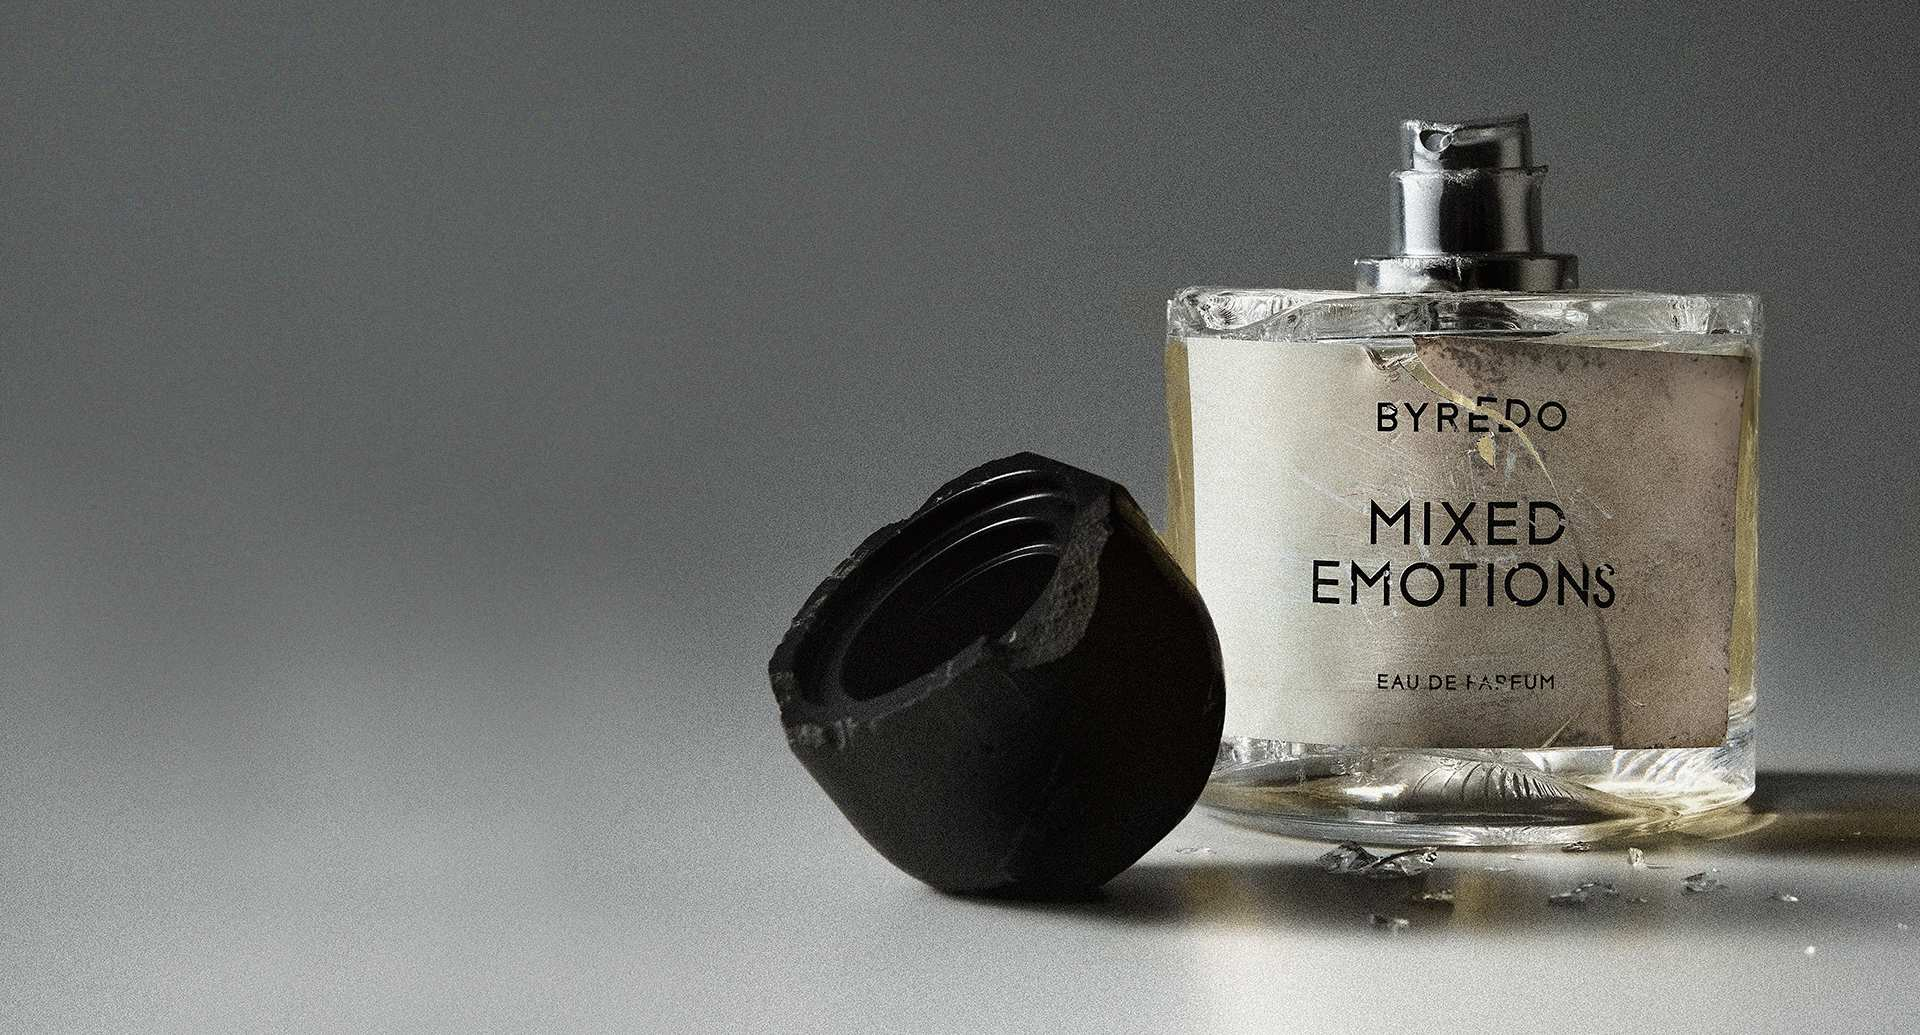 Just Launched: Byredo Mixed Emotions